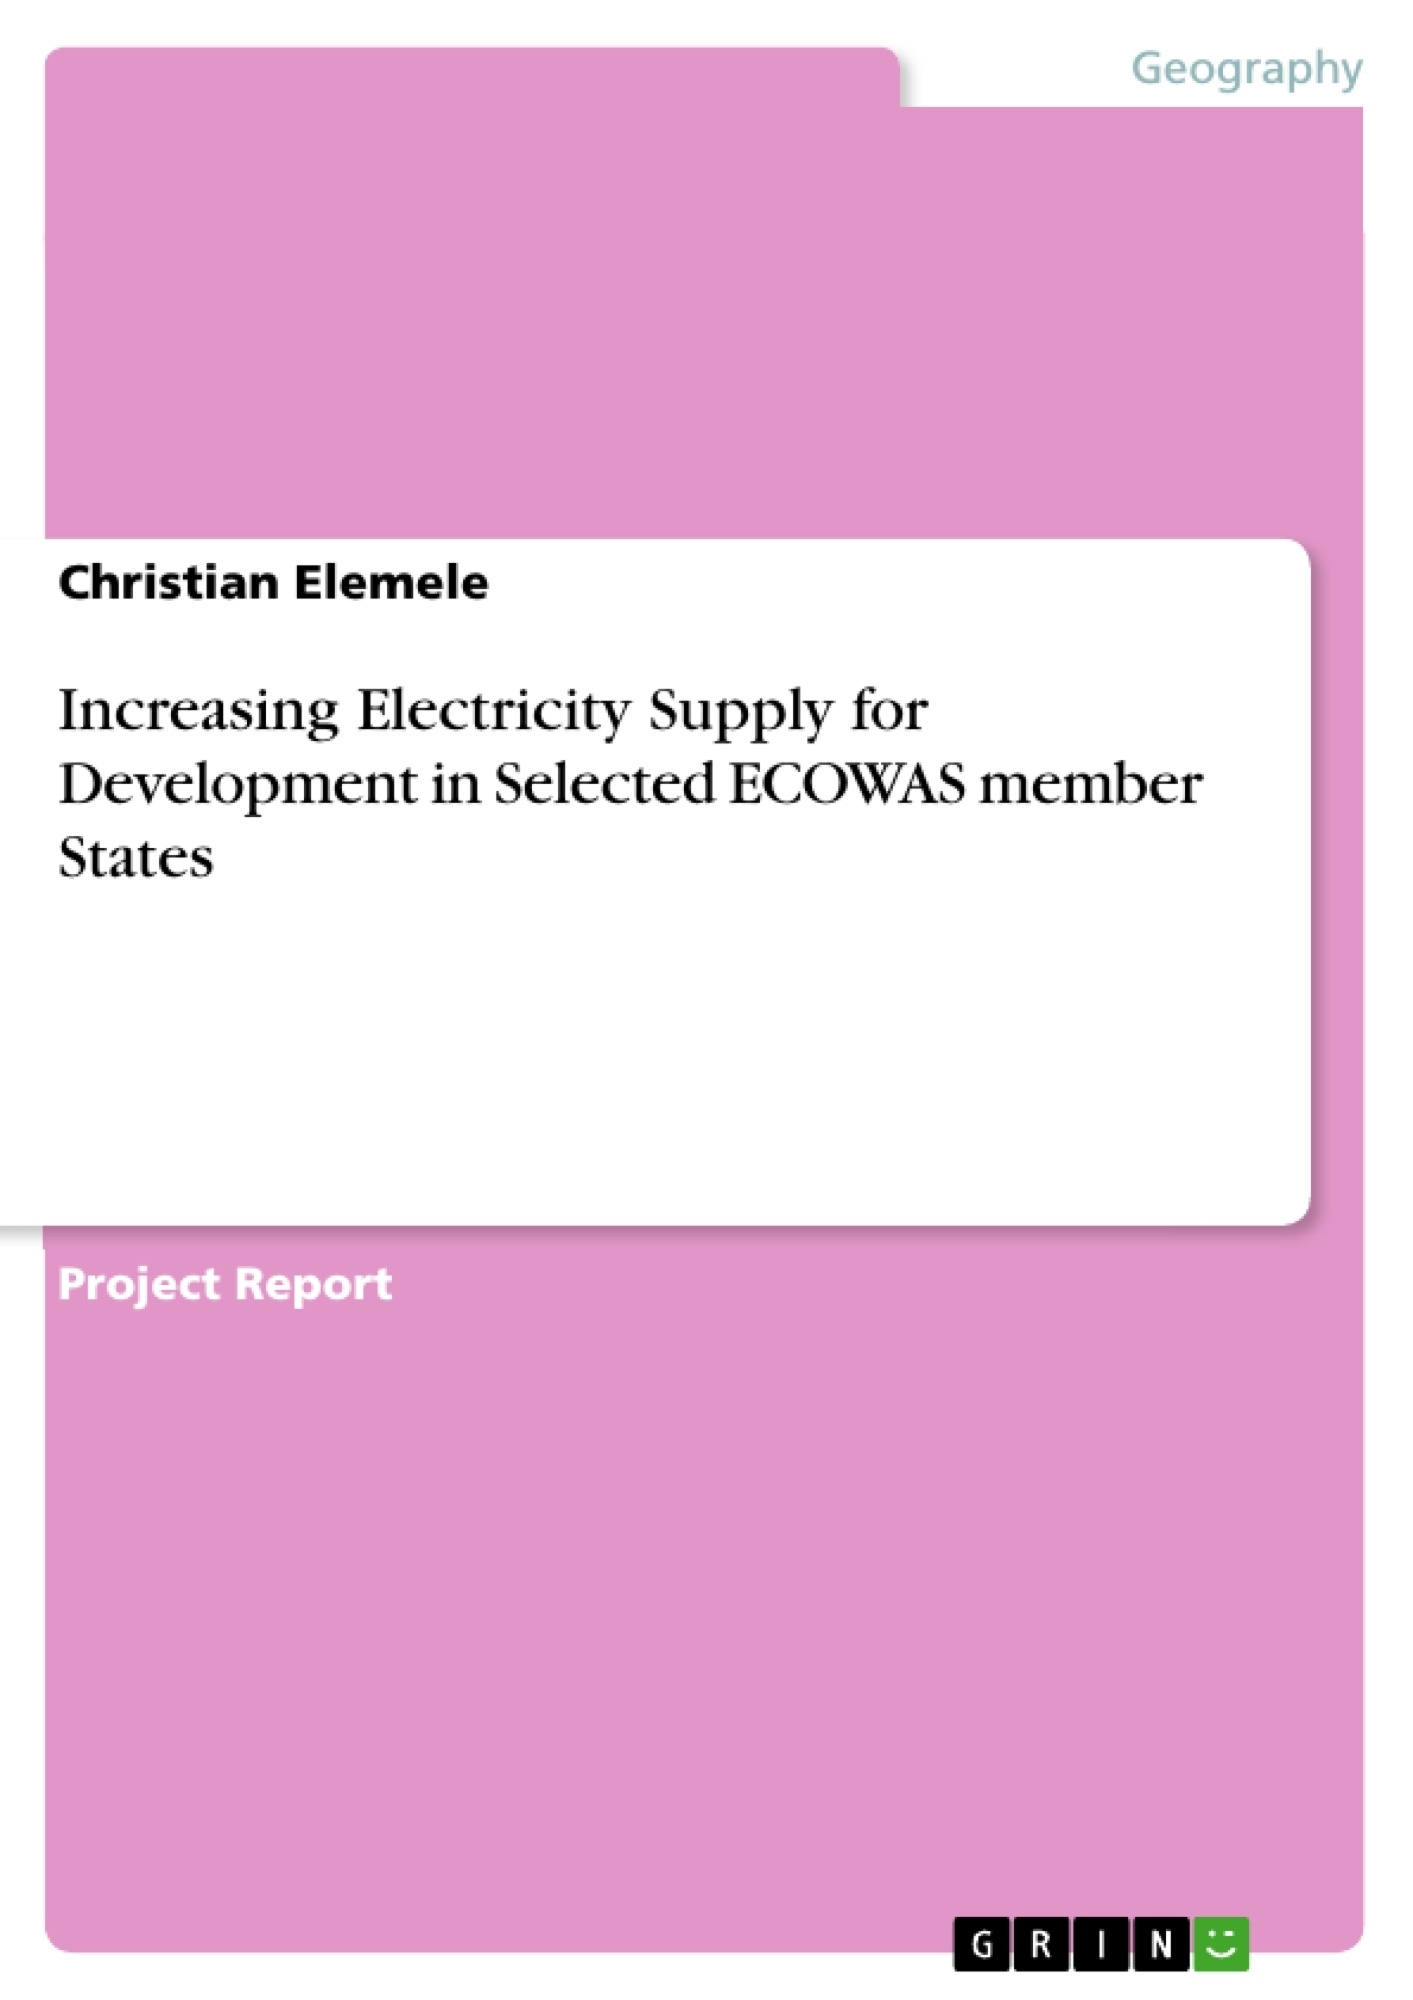 Title: Increasing Electricity Supply for Development in Selected ECOWAS member States